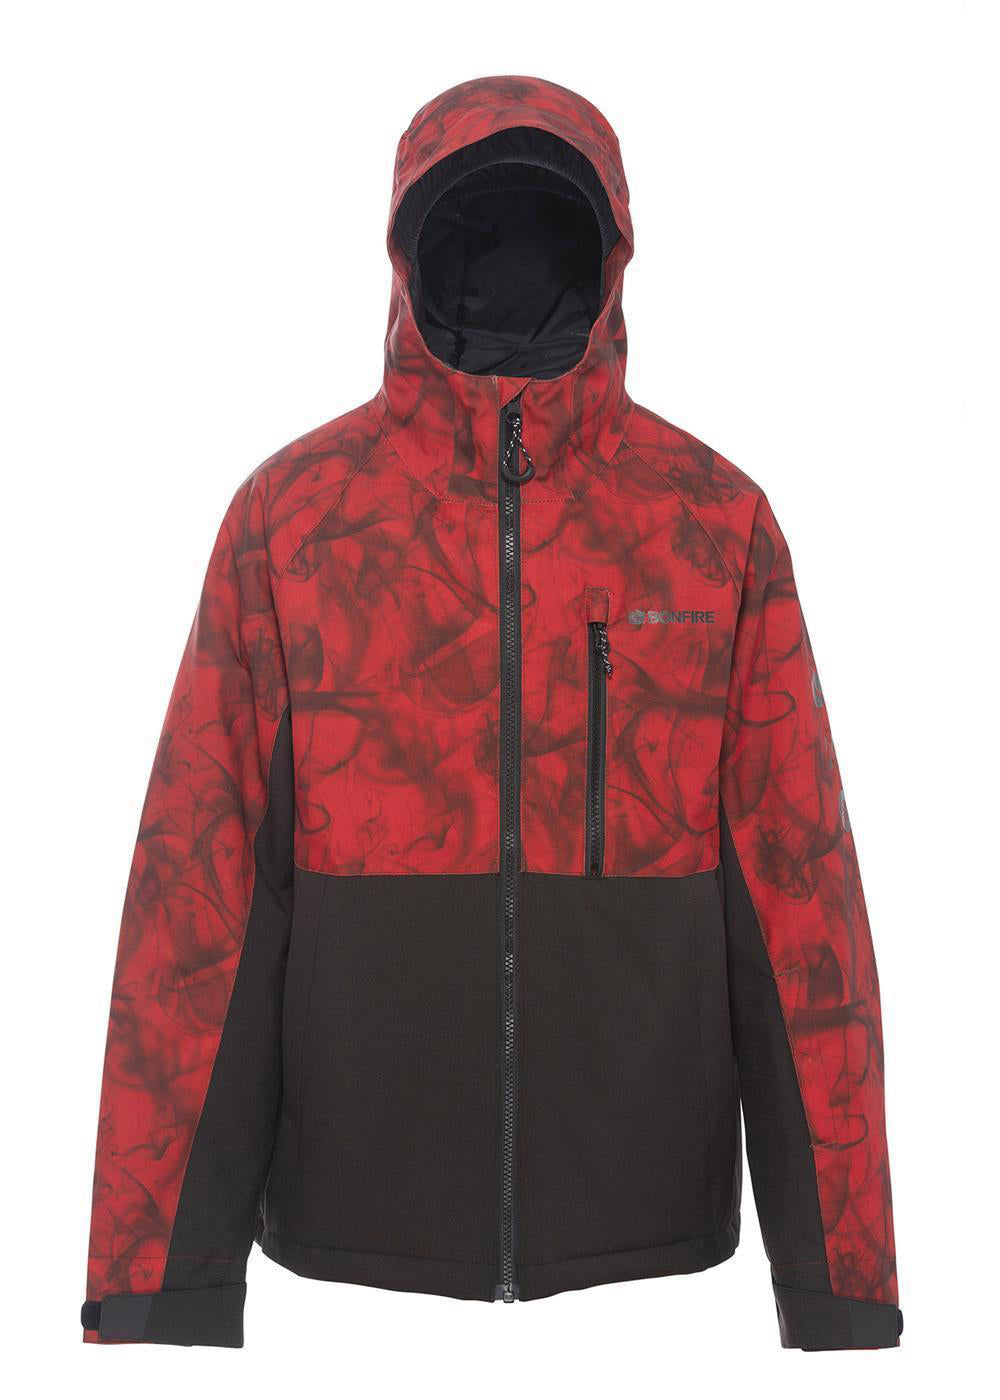 YOUTH PYRE INSULATED JACKET